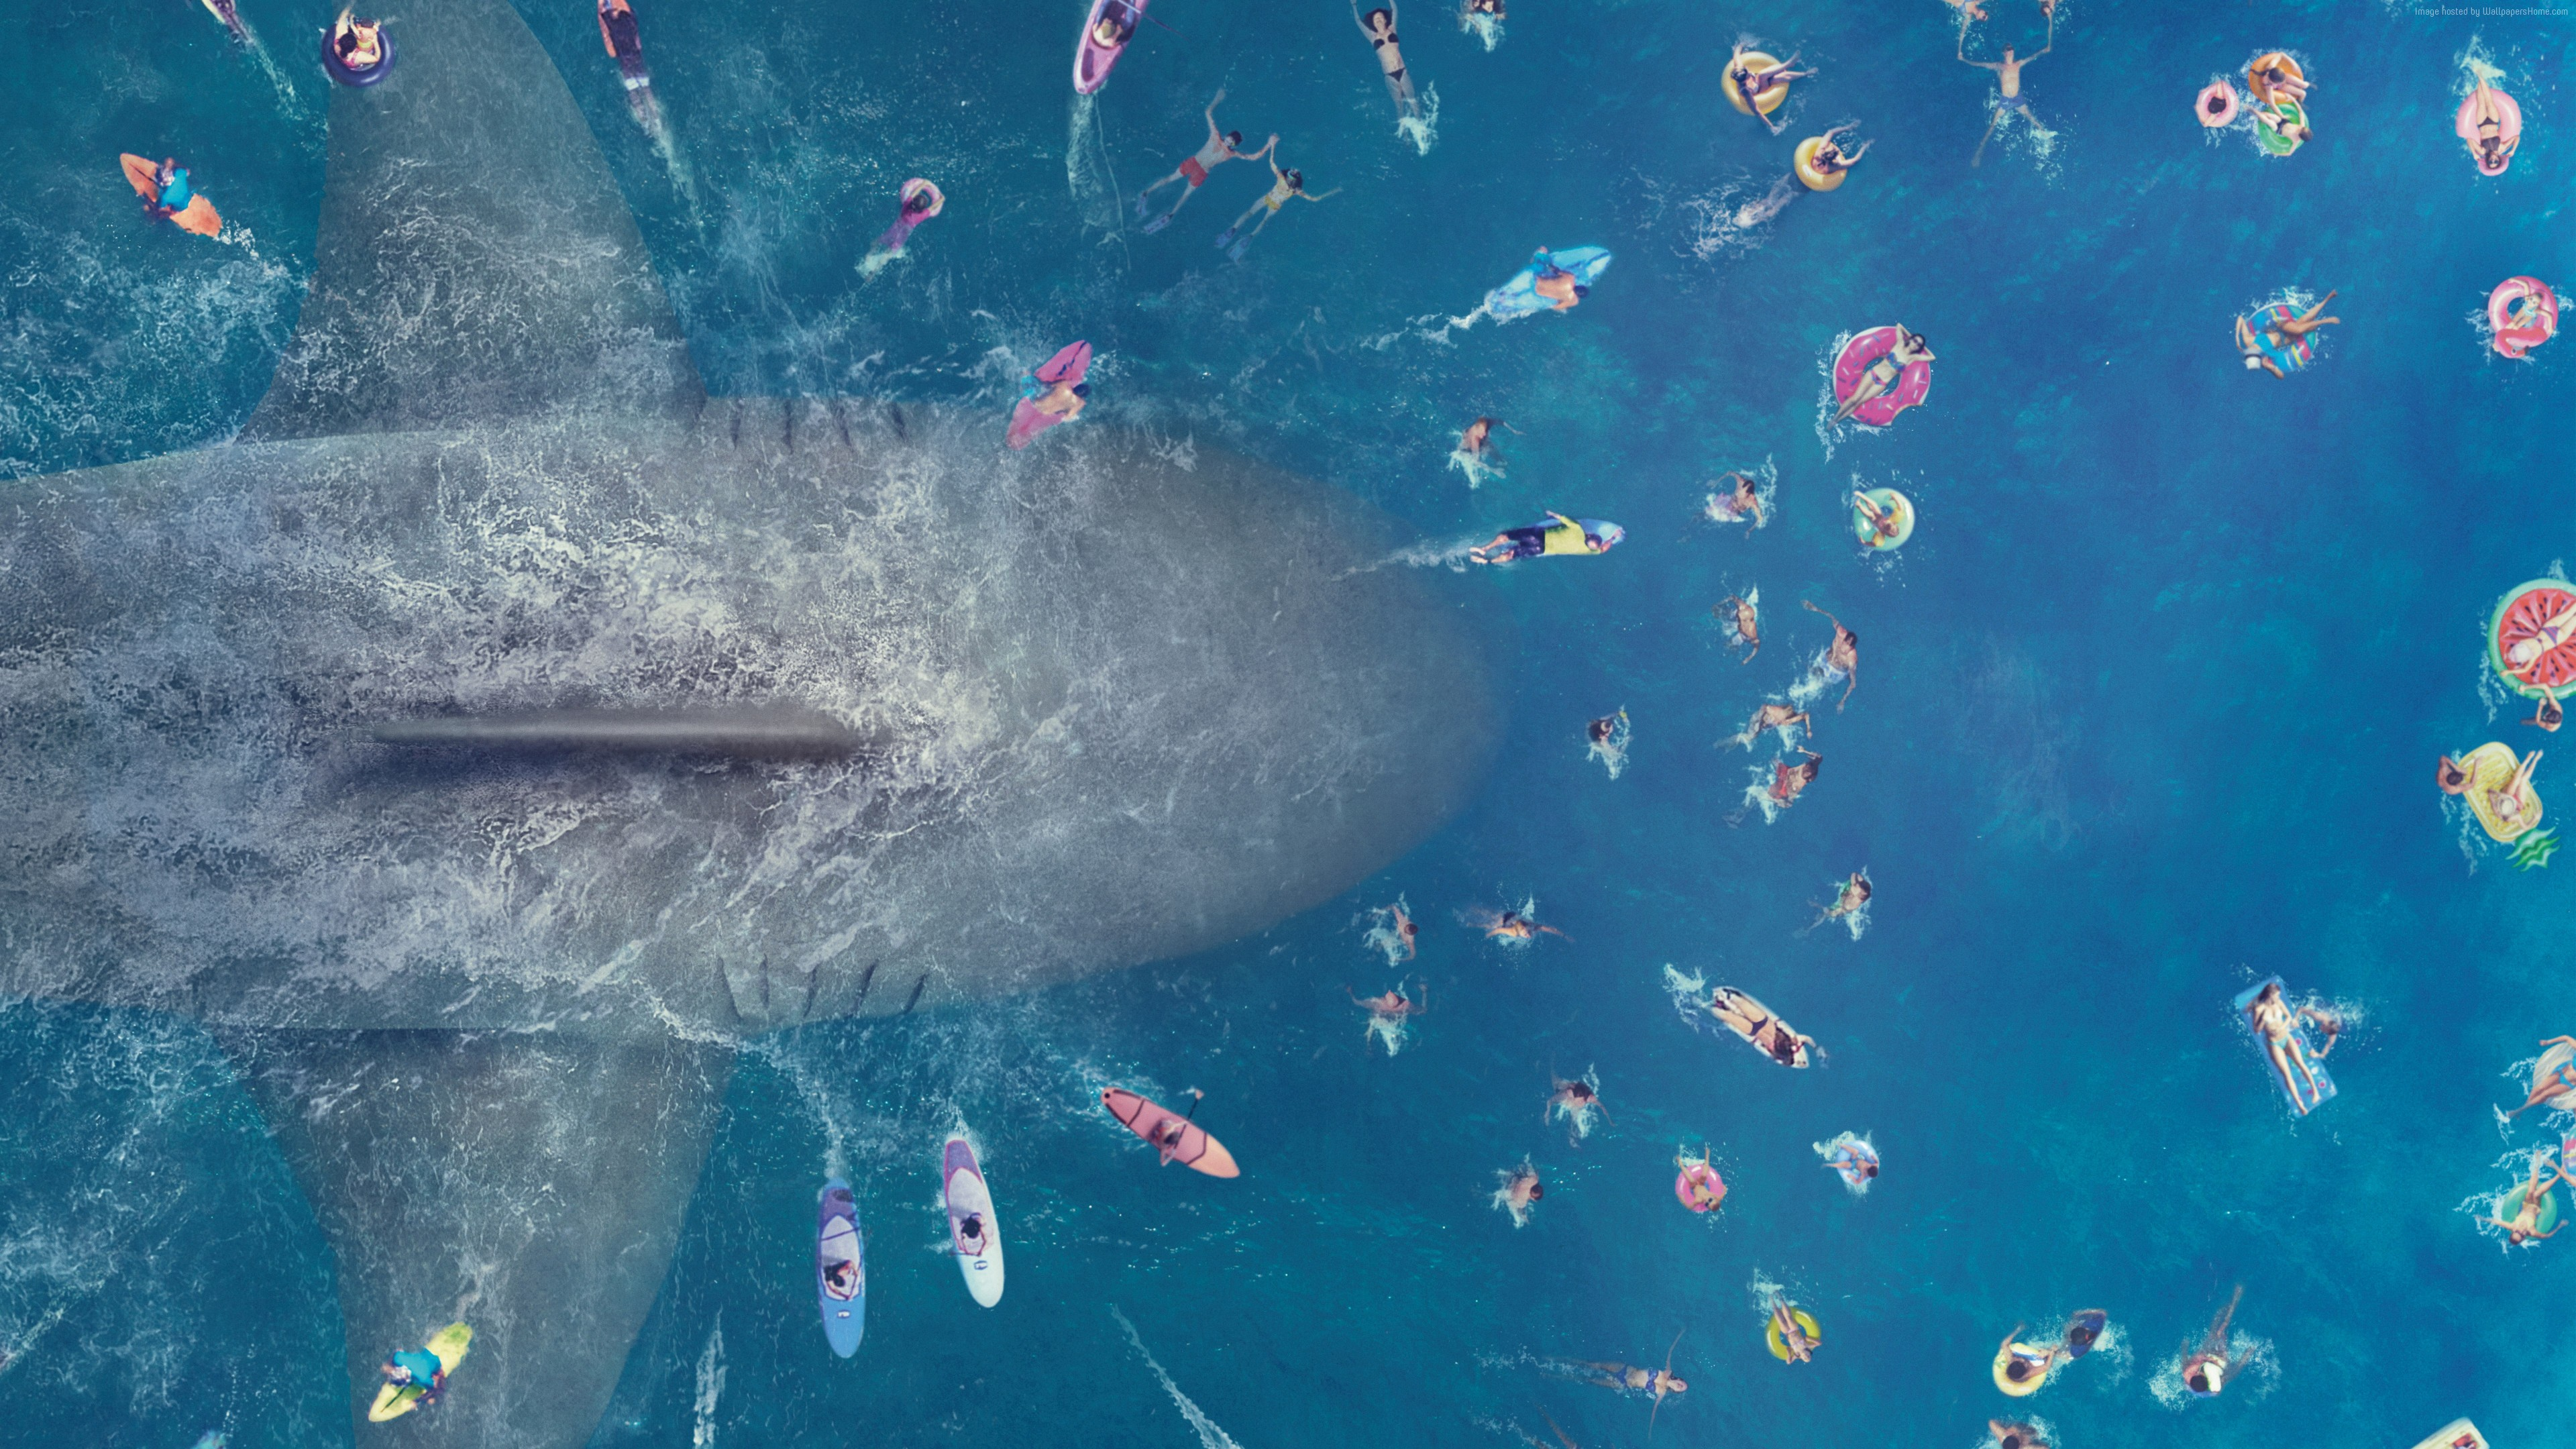 Wallpaper The Meg, poster, 8K, Movies